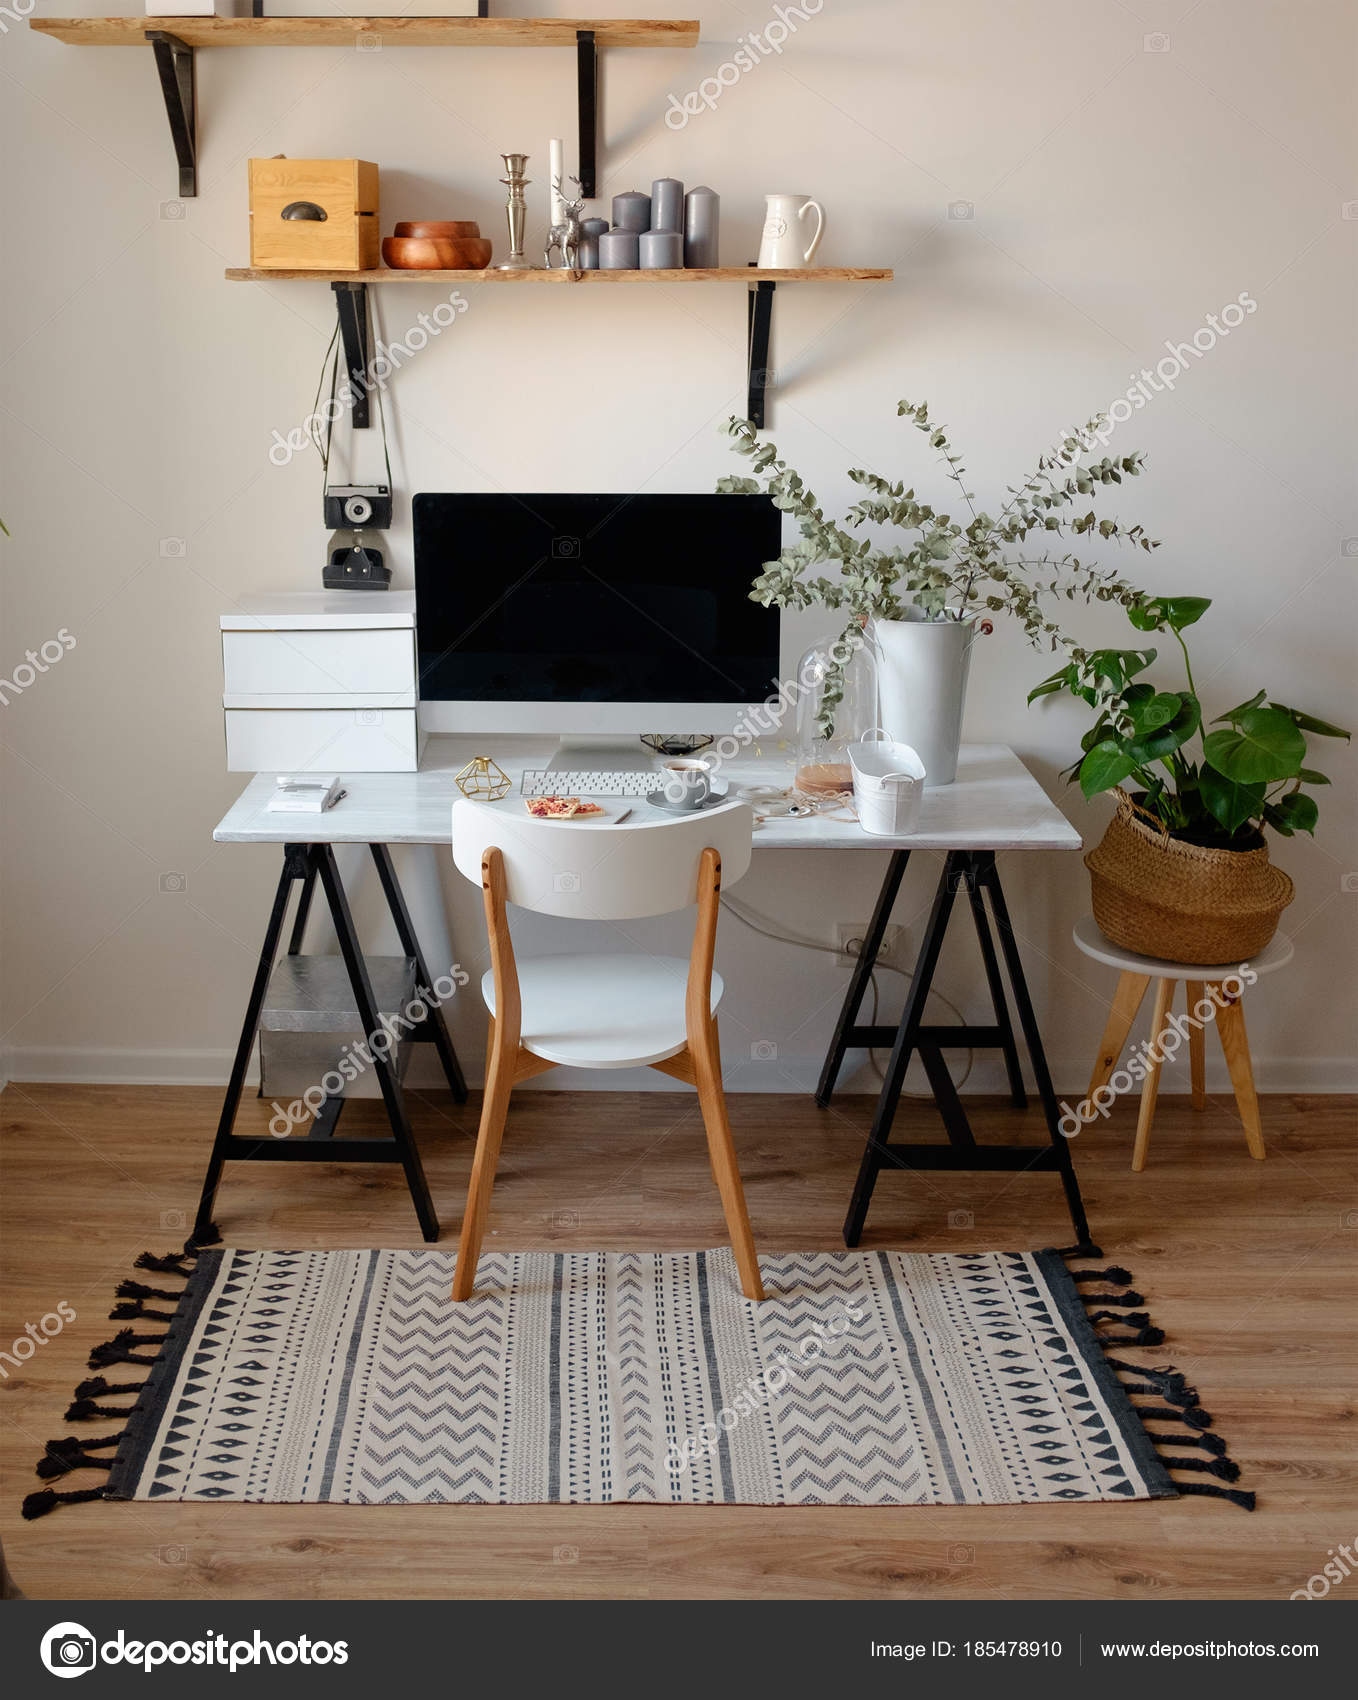 A Chic Workplace In Scandinavian Style White Chair On The Computer Table And Eucalyptus Pot Wooden Shelves With Decor Photo By Olegsamoylov